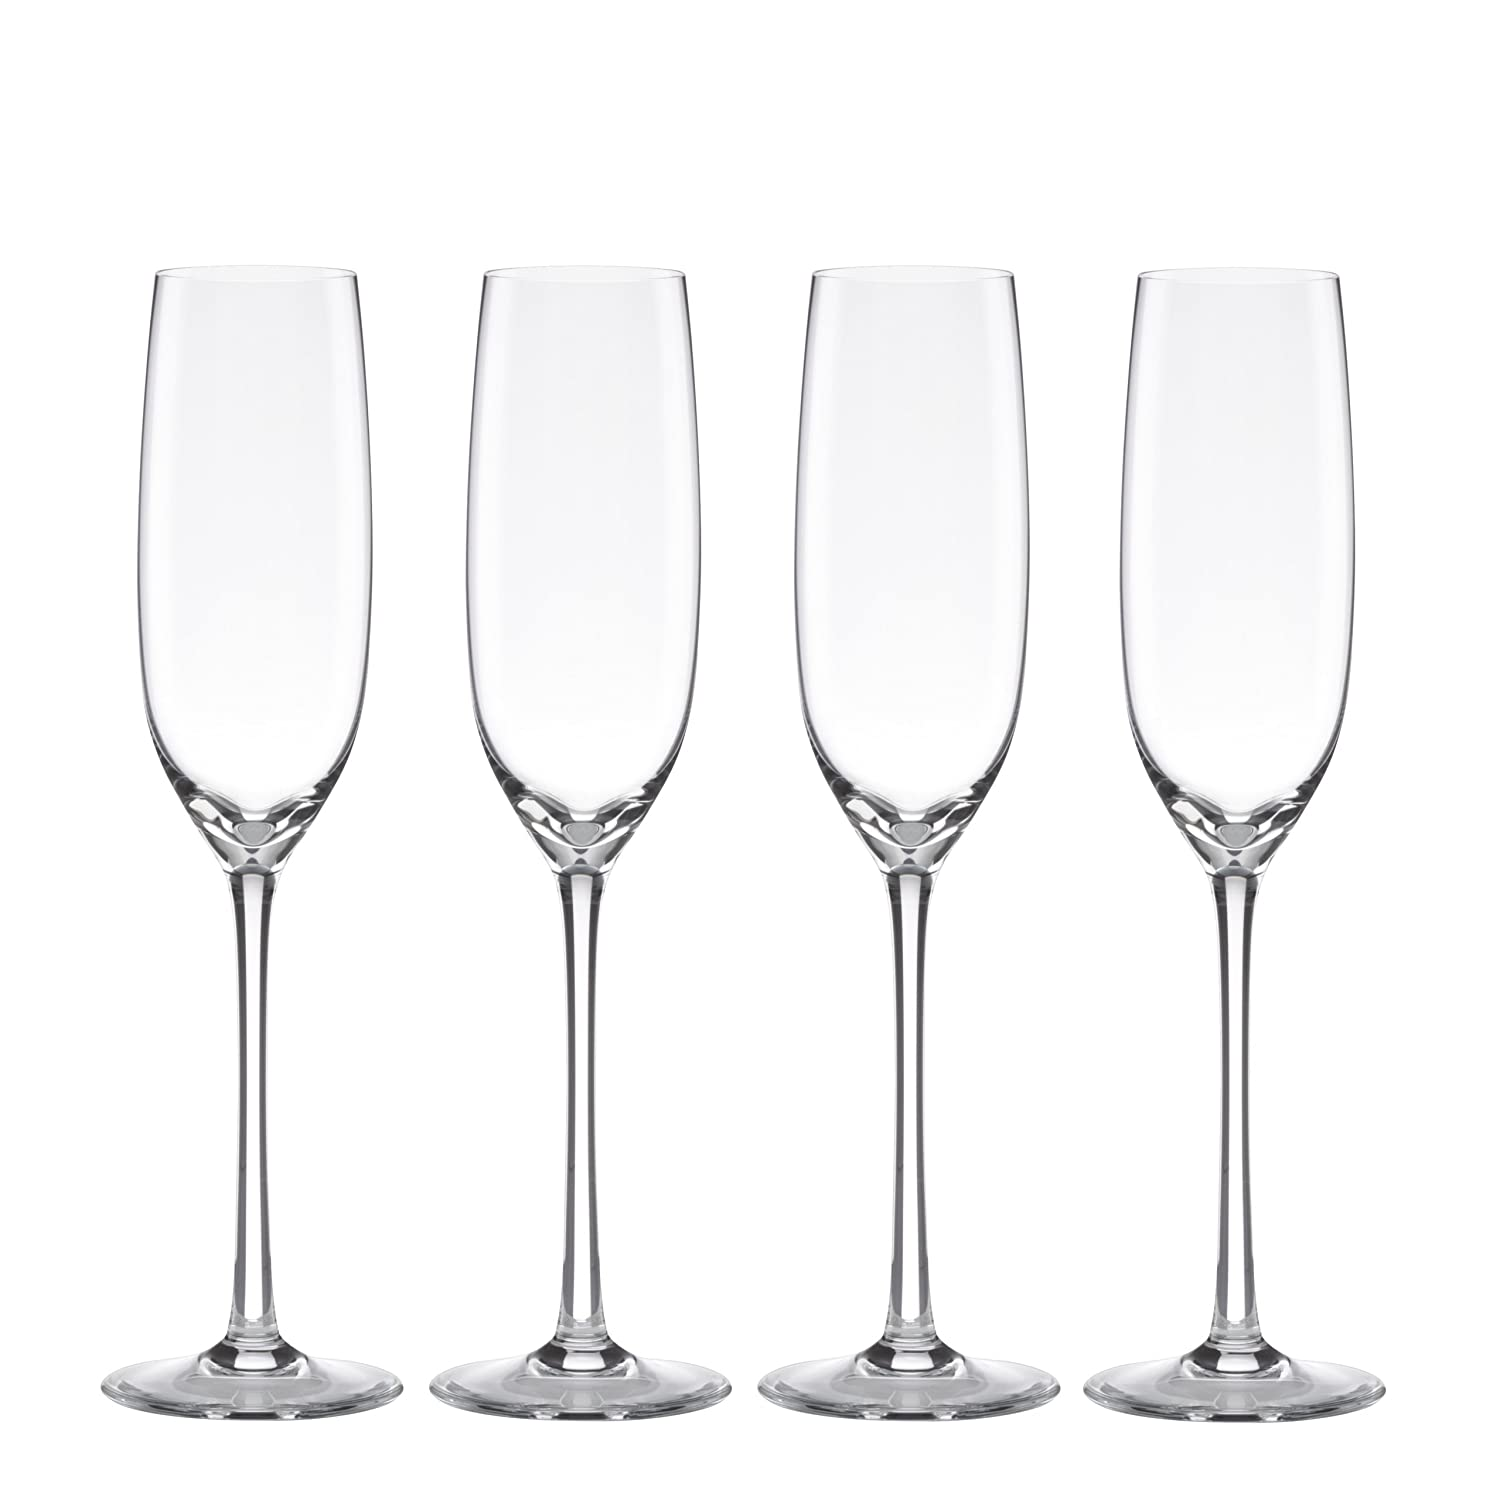 Lenox Unisex Tuscany Classics Fluted Champaign Set of 4 N/A Glassware 6099840